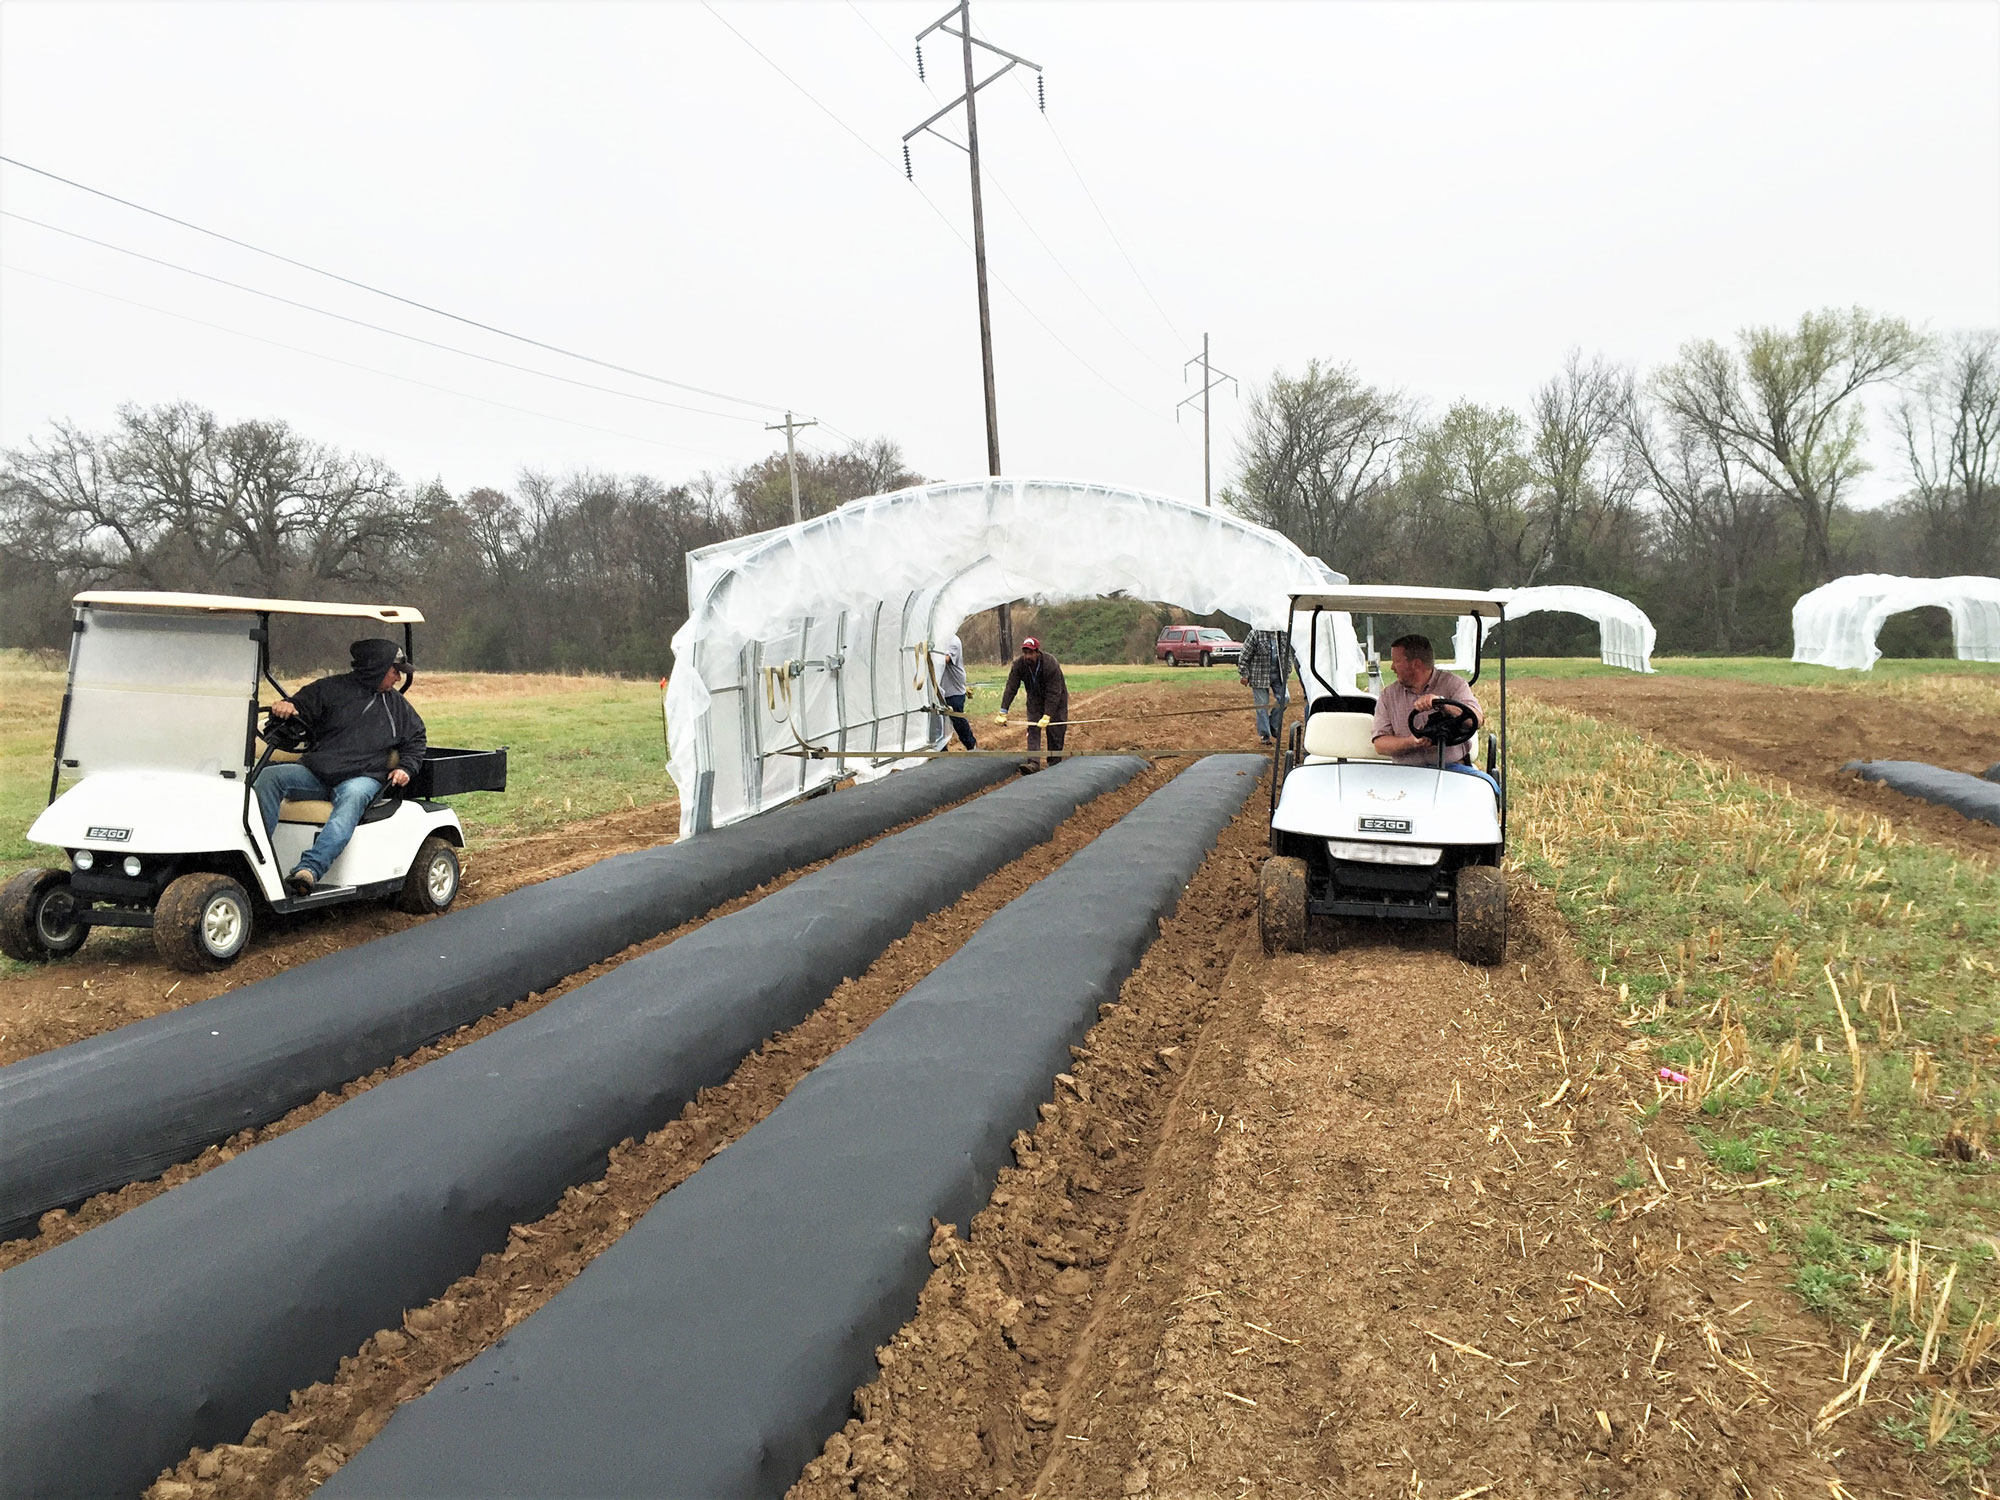 A high tunnel hoop house is moved onto a raised bed plot in preparation for establishing a tomato crop.